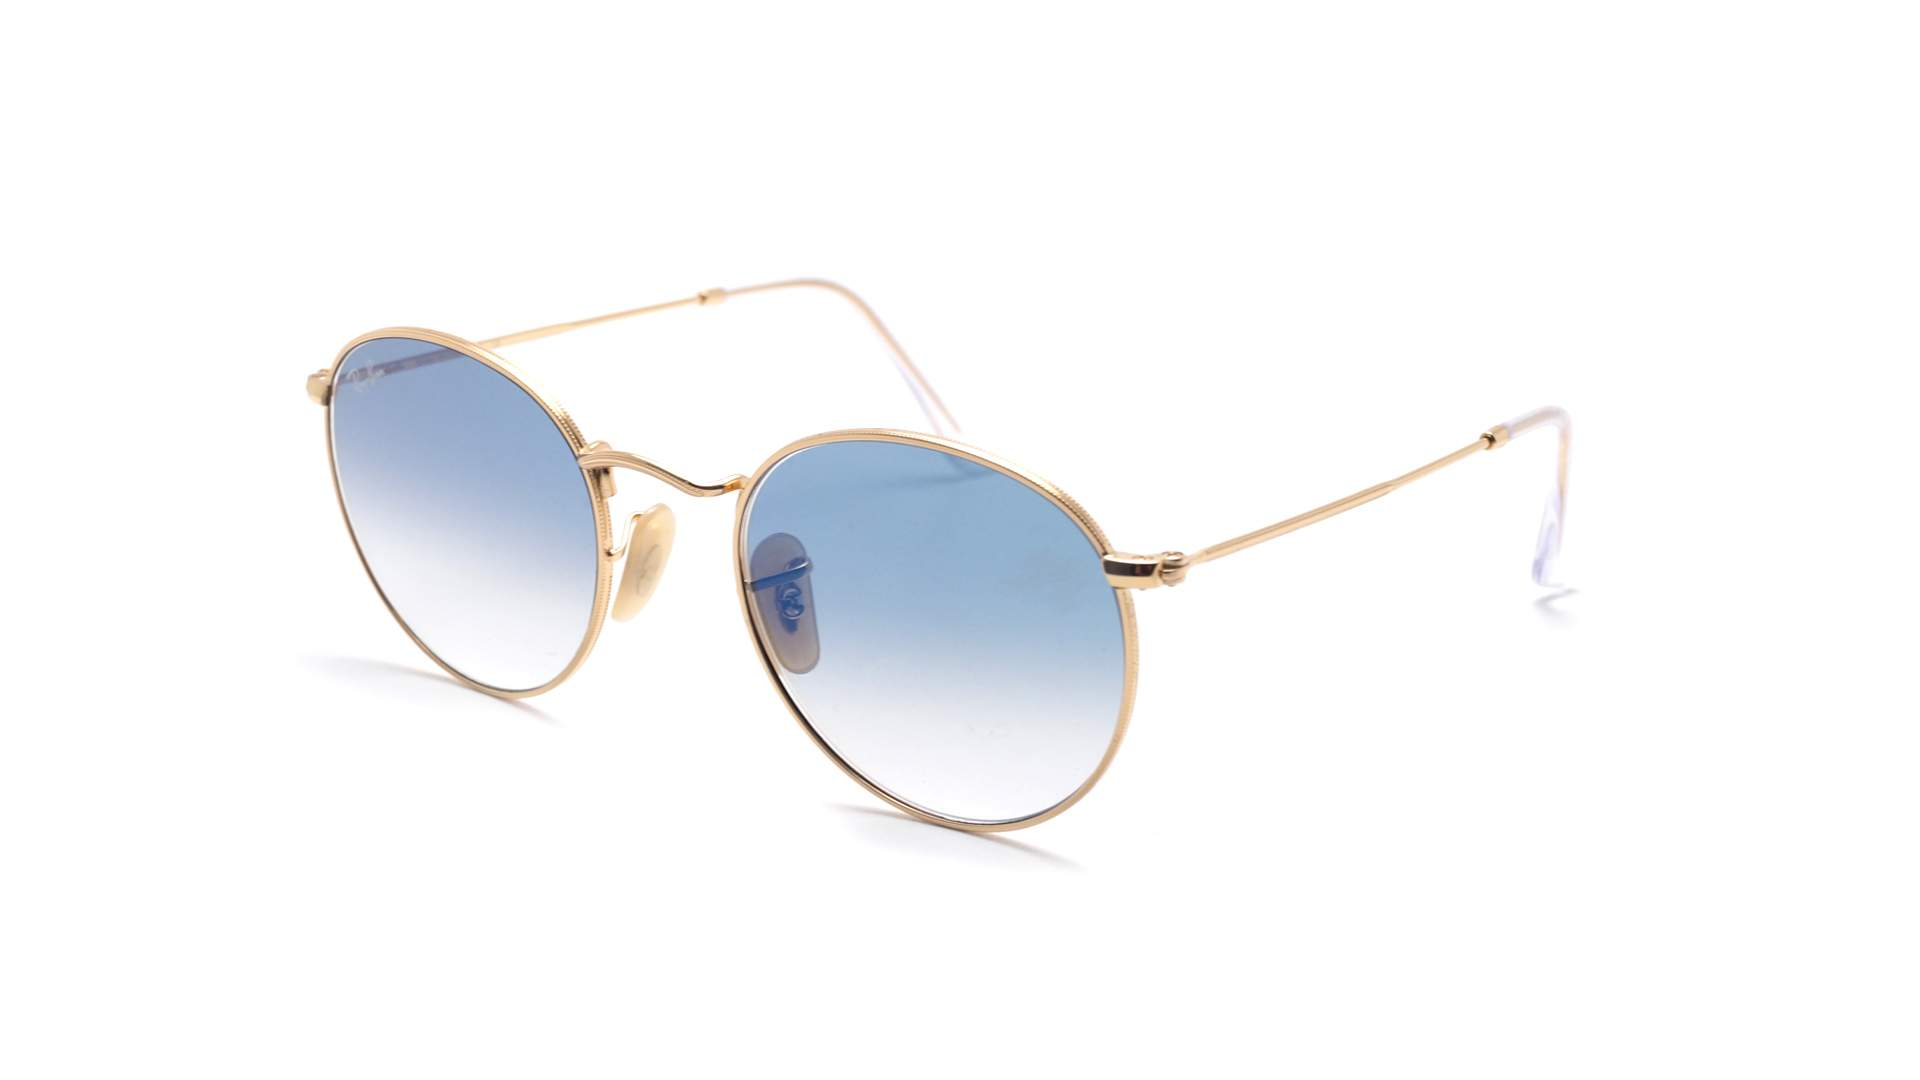 4348b2a32d20f Sunglasses Ray-Ban Round metal Flat Lenses Gold RB3447N 001 3F 53-21 Large  Gradient